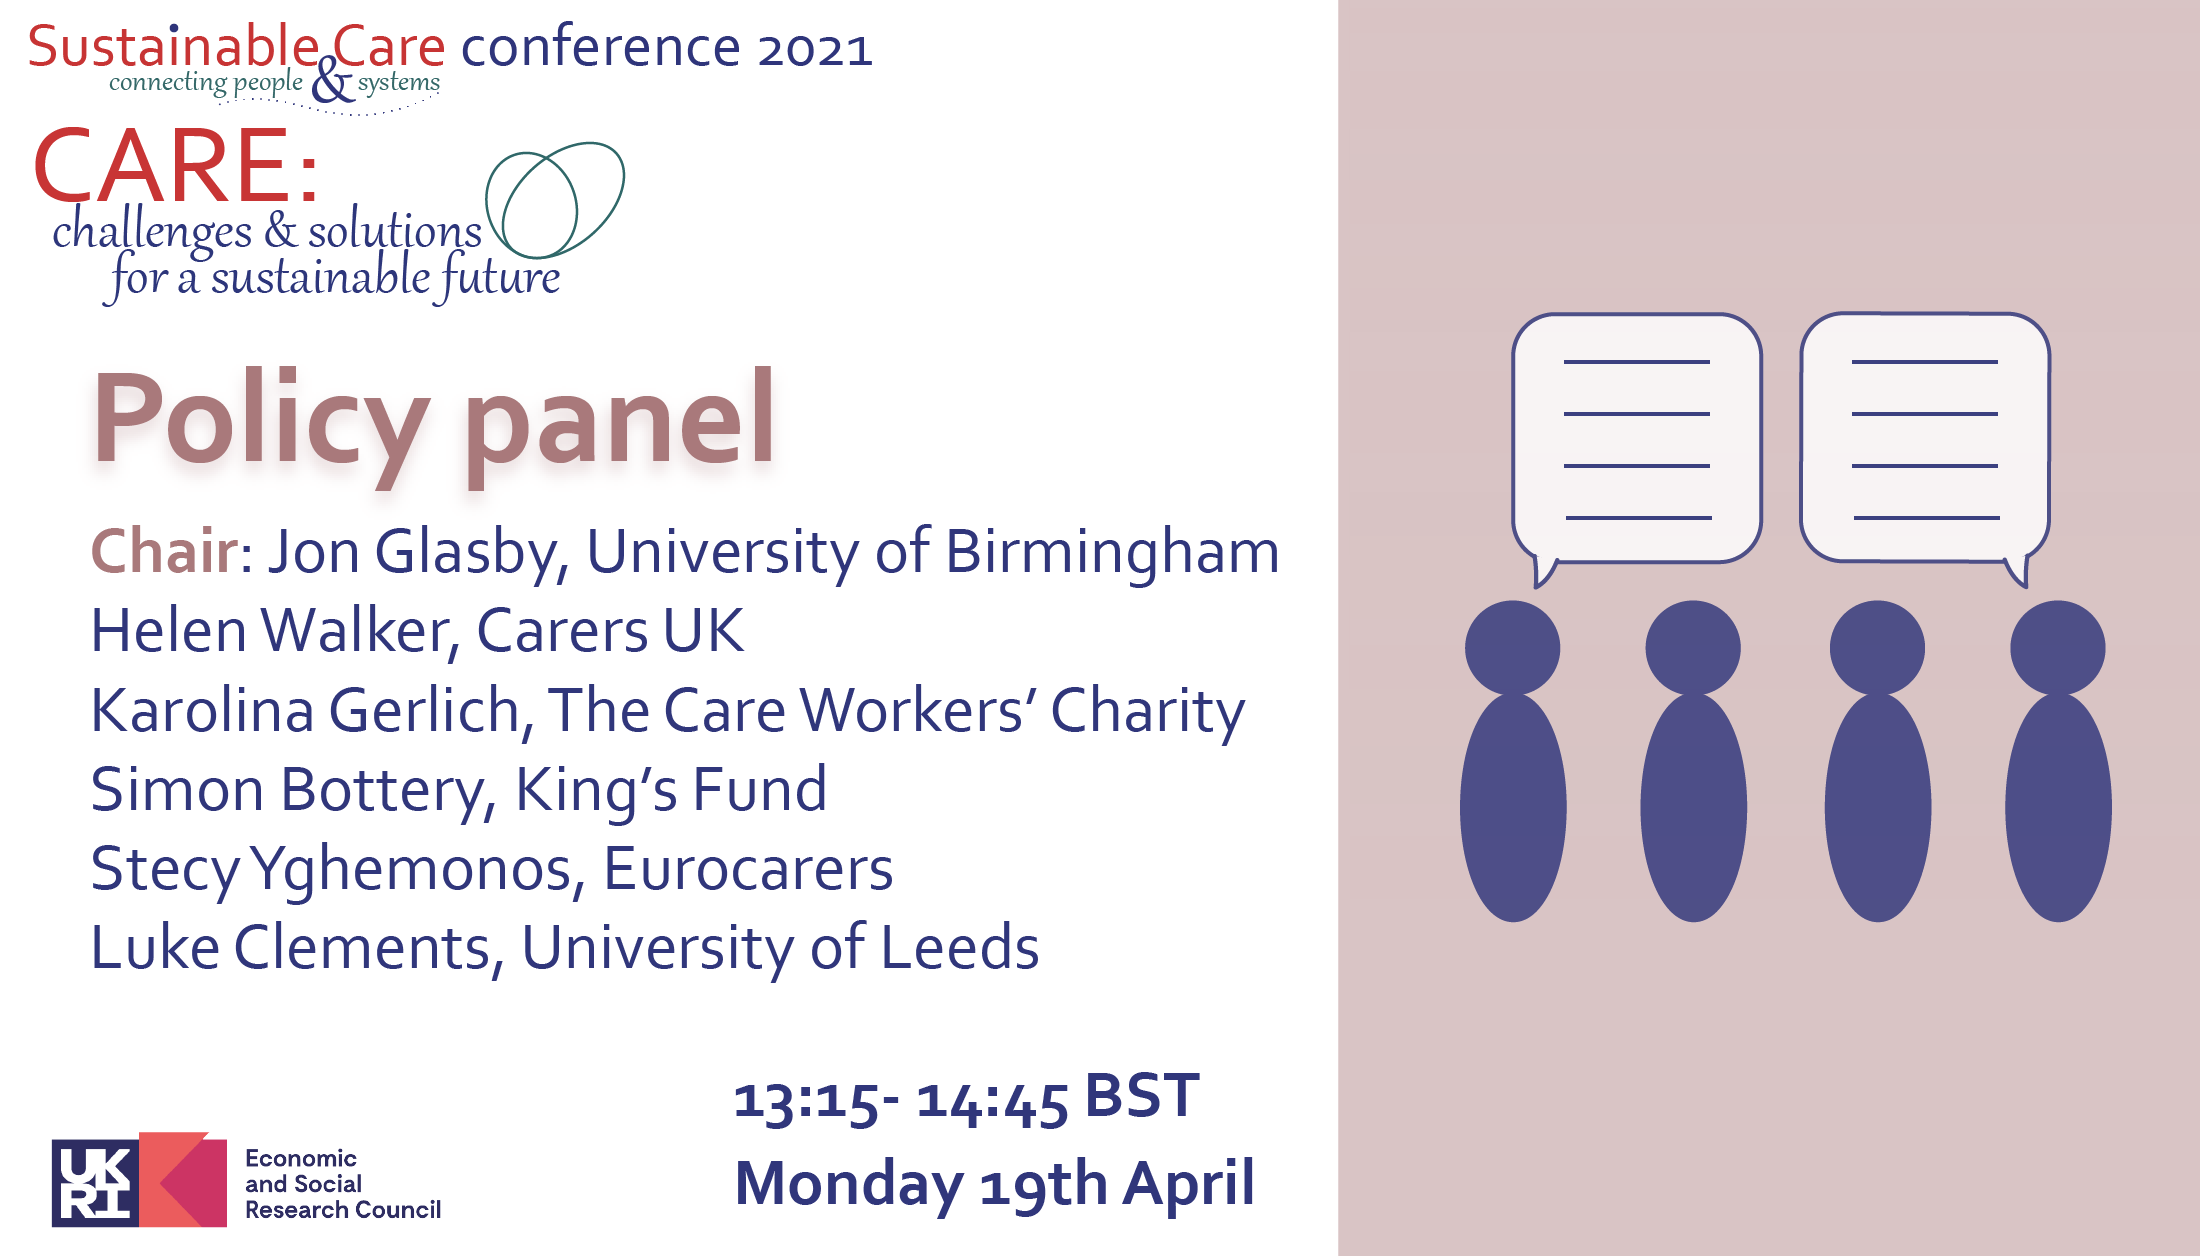 Policy panel Monday 19th April 13:15 BST